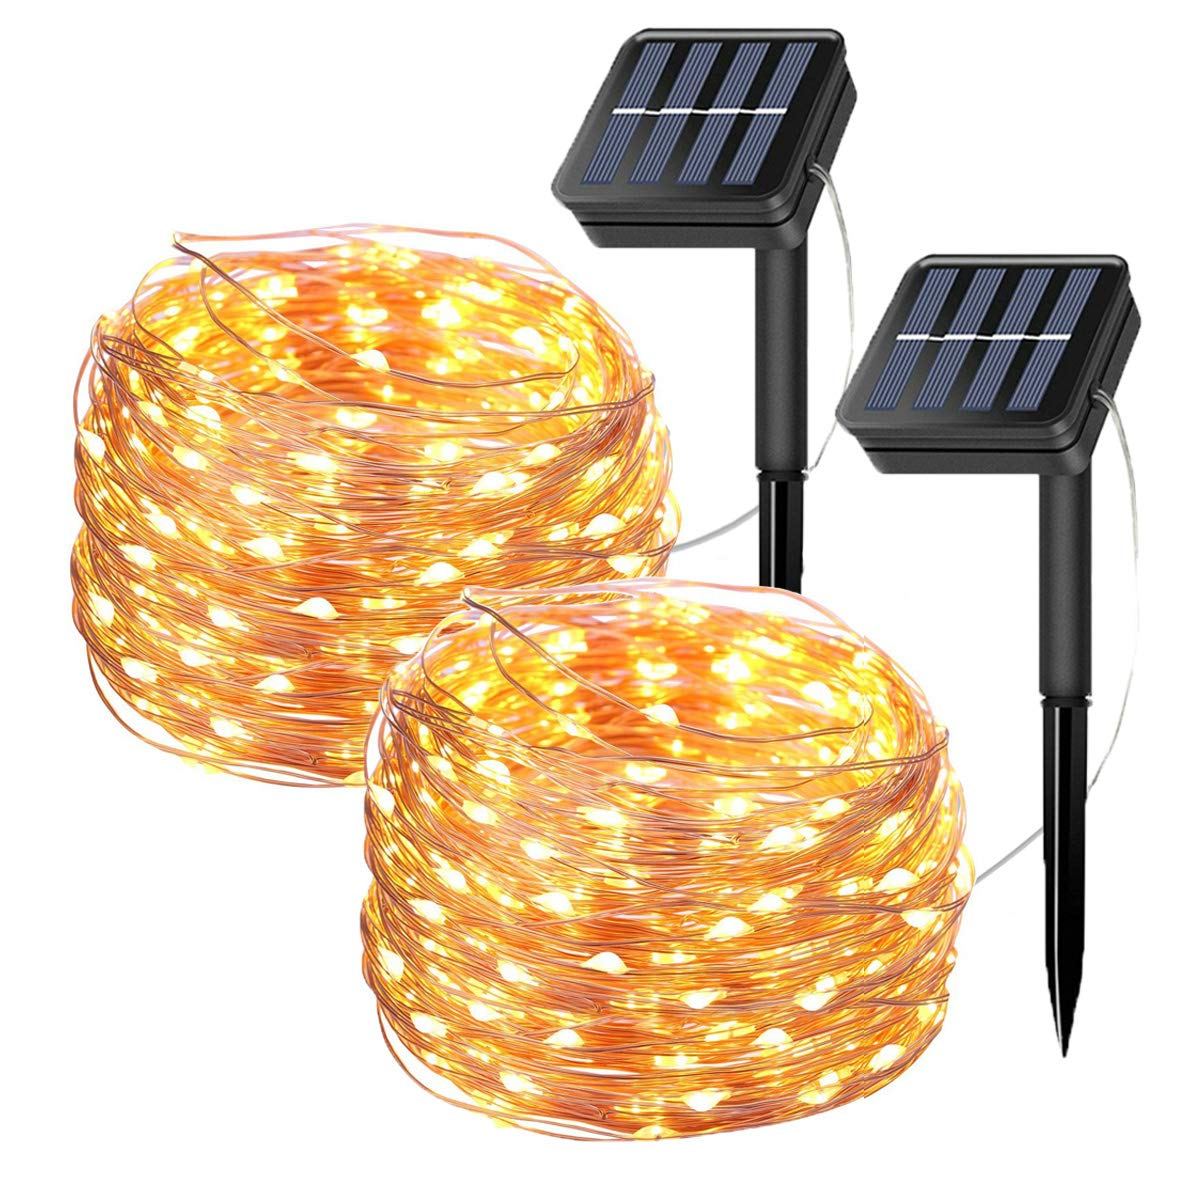 20 Meters//66ft 200 LED 8 Modes Copper Wire Starry Lights 2 Pack Solar Fairy String Lights Indoor//Outdoor Solar Lights for Christmas,Garden,Home,Patio,Wedding,Party-Warm White